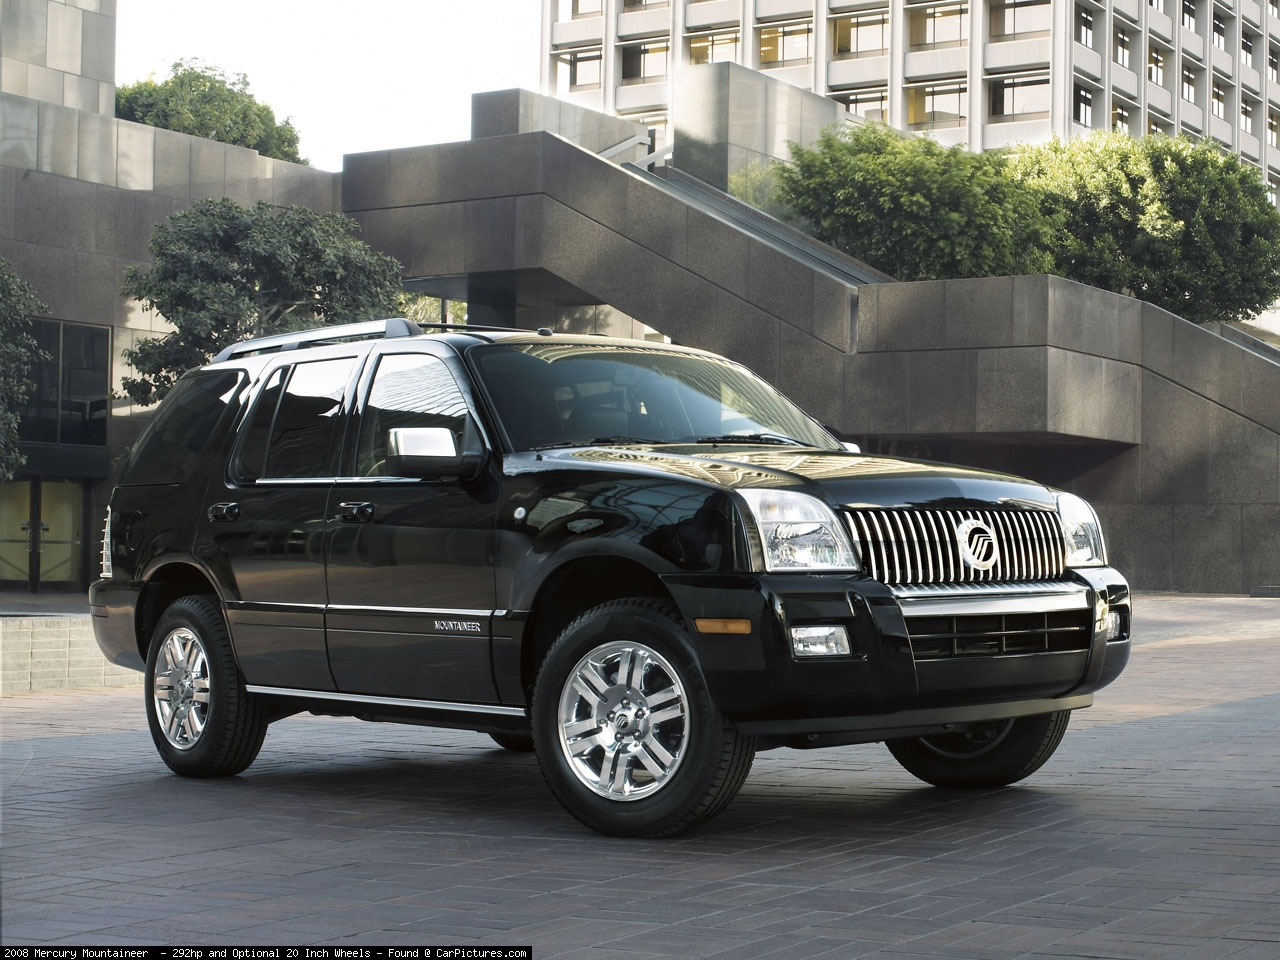 Mercury Mountaineer photo 46050